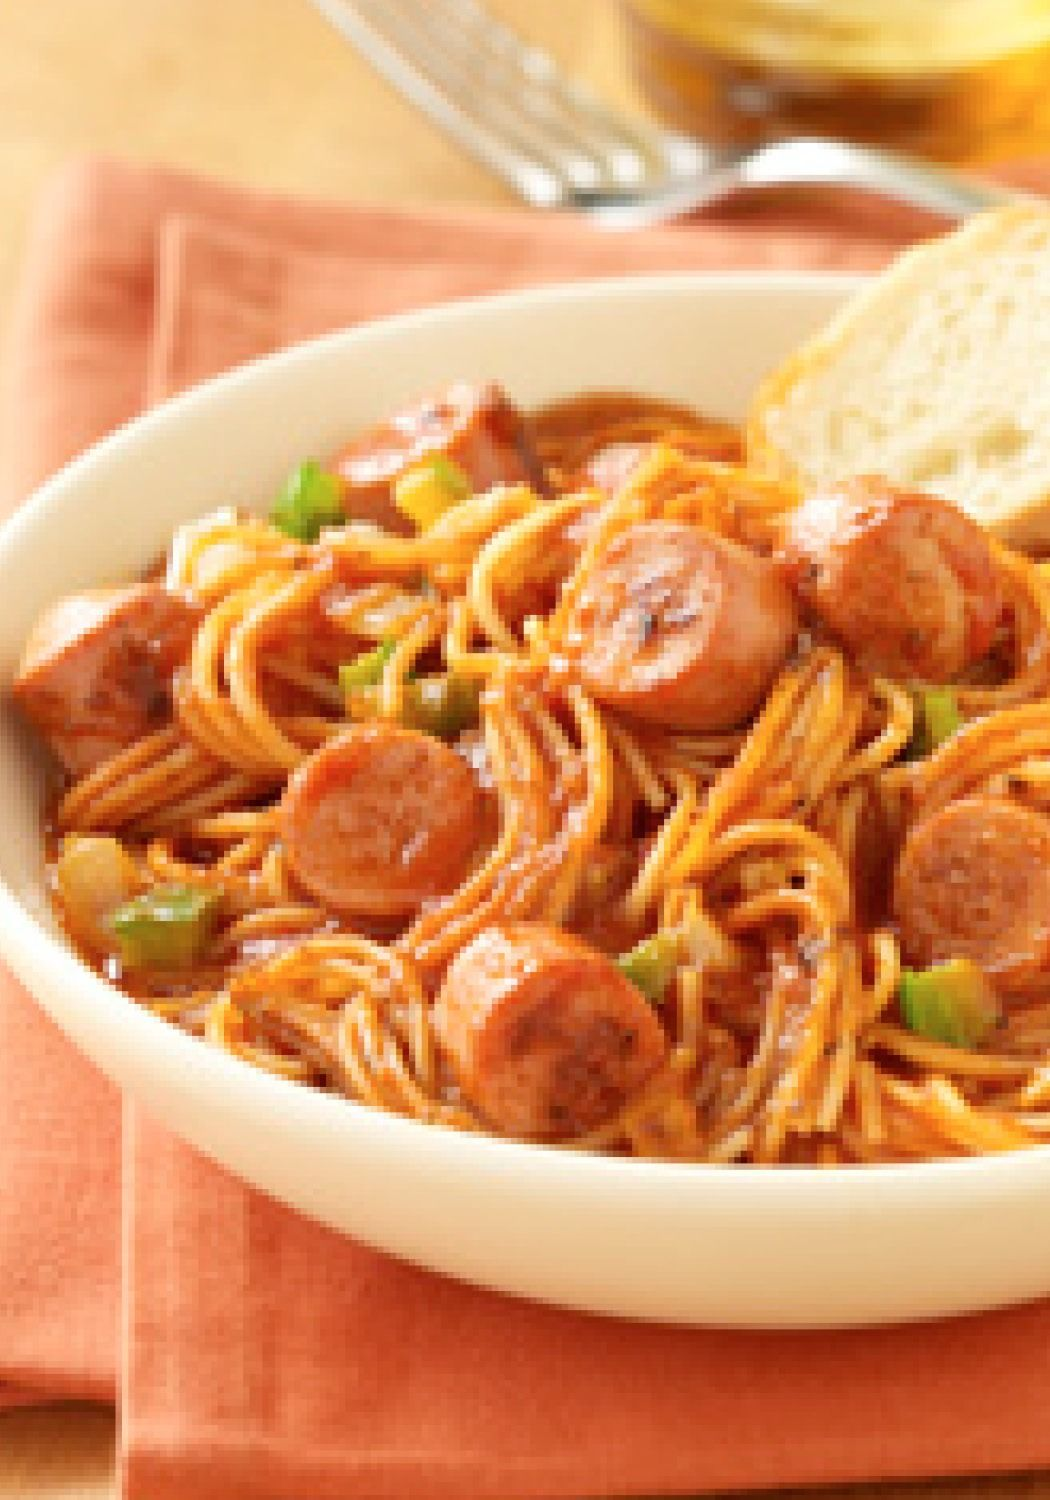 Fideo With Vienna Sausage Recipe In 2020 Vienna Sausage Food Recipes Easy Dinner Recipes